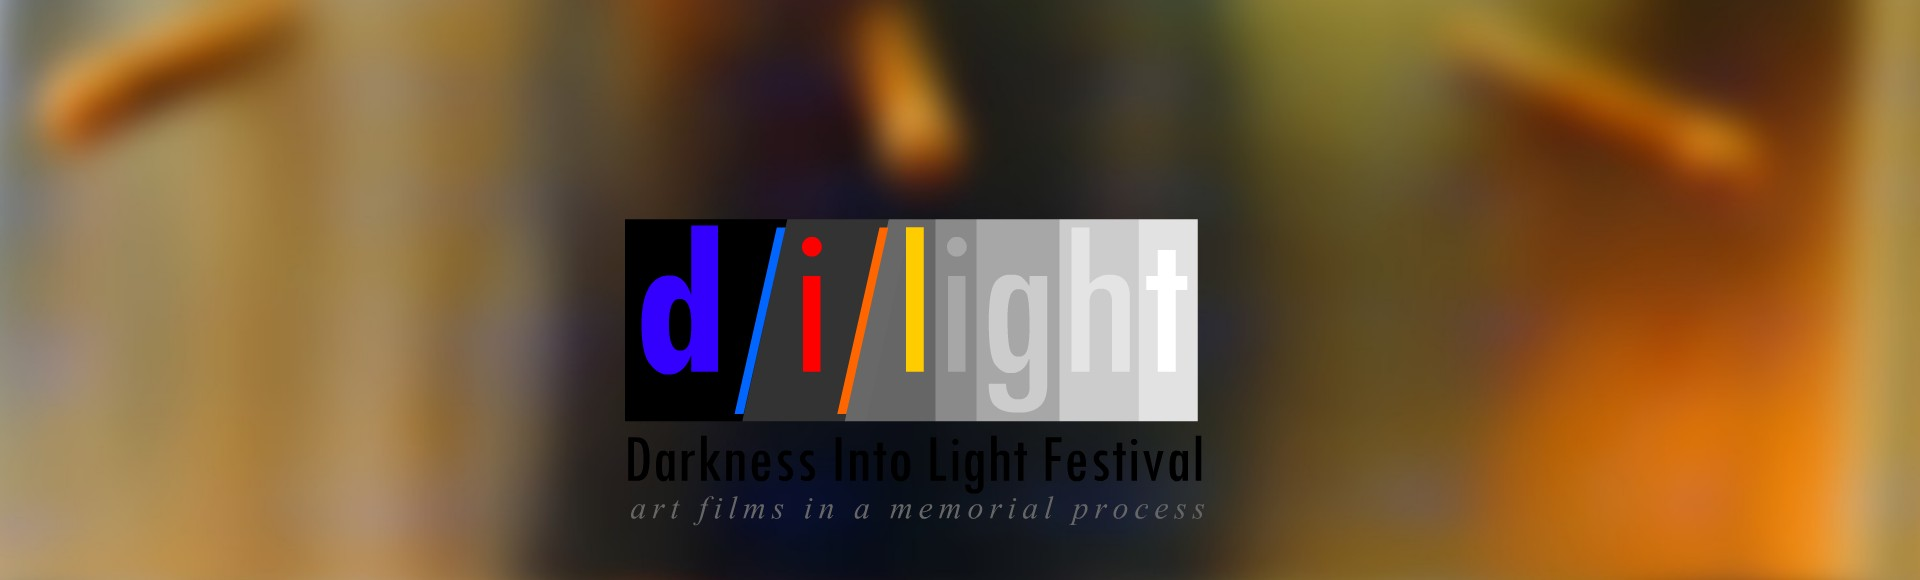 d/i/light - Darkness Into Light Festival